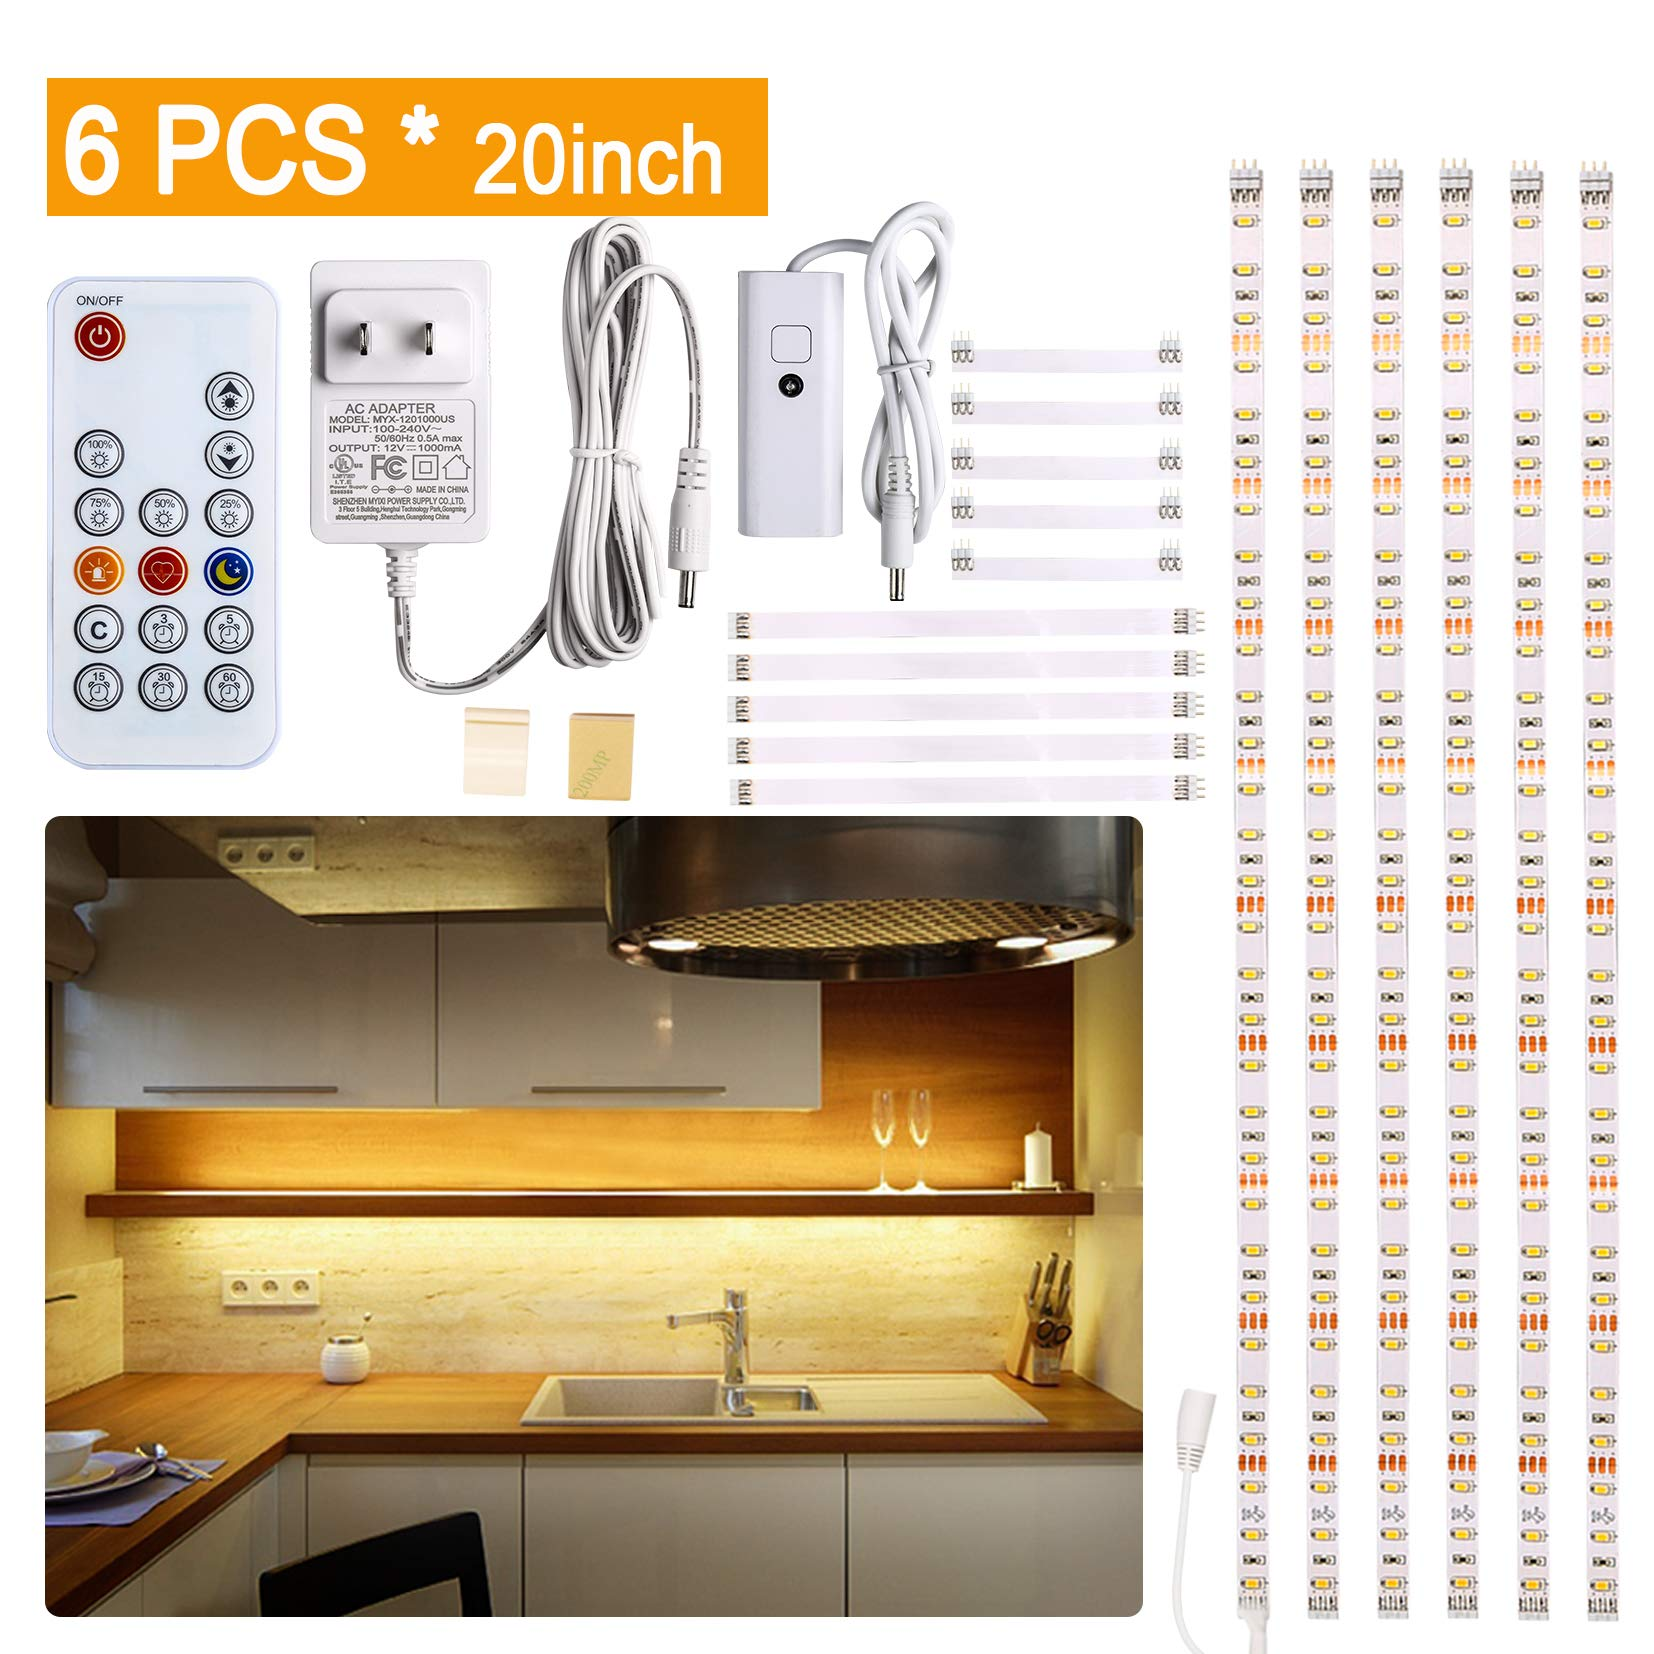 Under Cabinet LED lighting kit, 6 PCS LED Strip lights with Remote Control Dimmer and Adapter, Dimmable for Kitchen Cabinet,Counter,Shelf,TV Back,Showcase 2700K Warm White, Bright, Timing by WOBANE